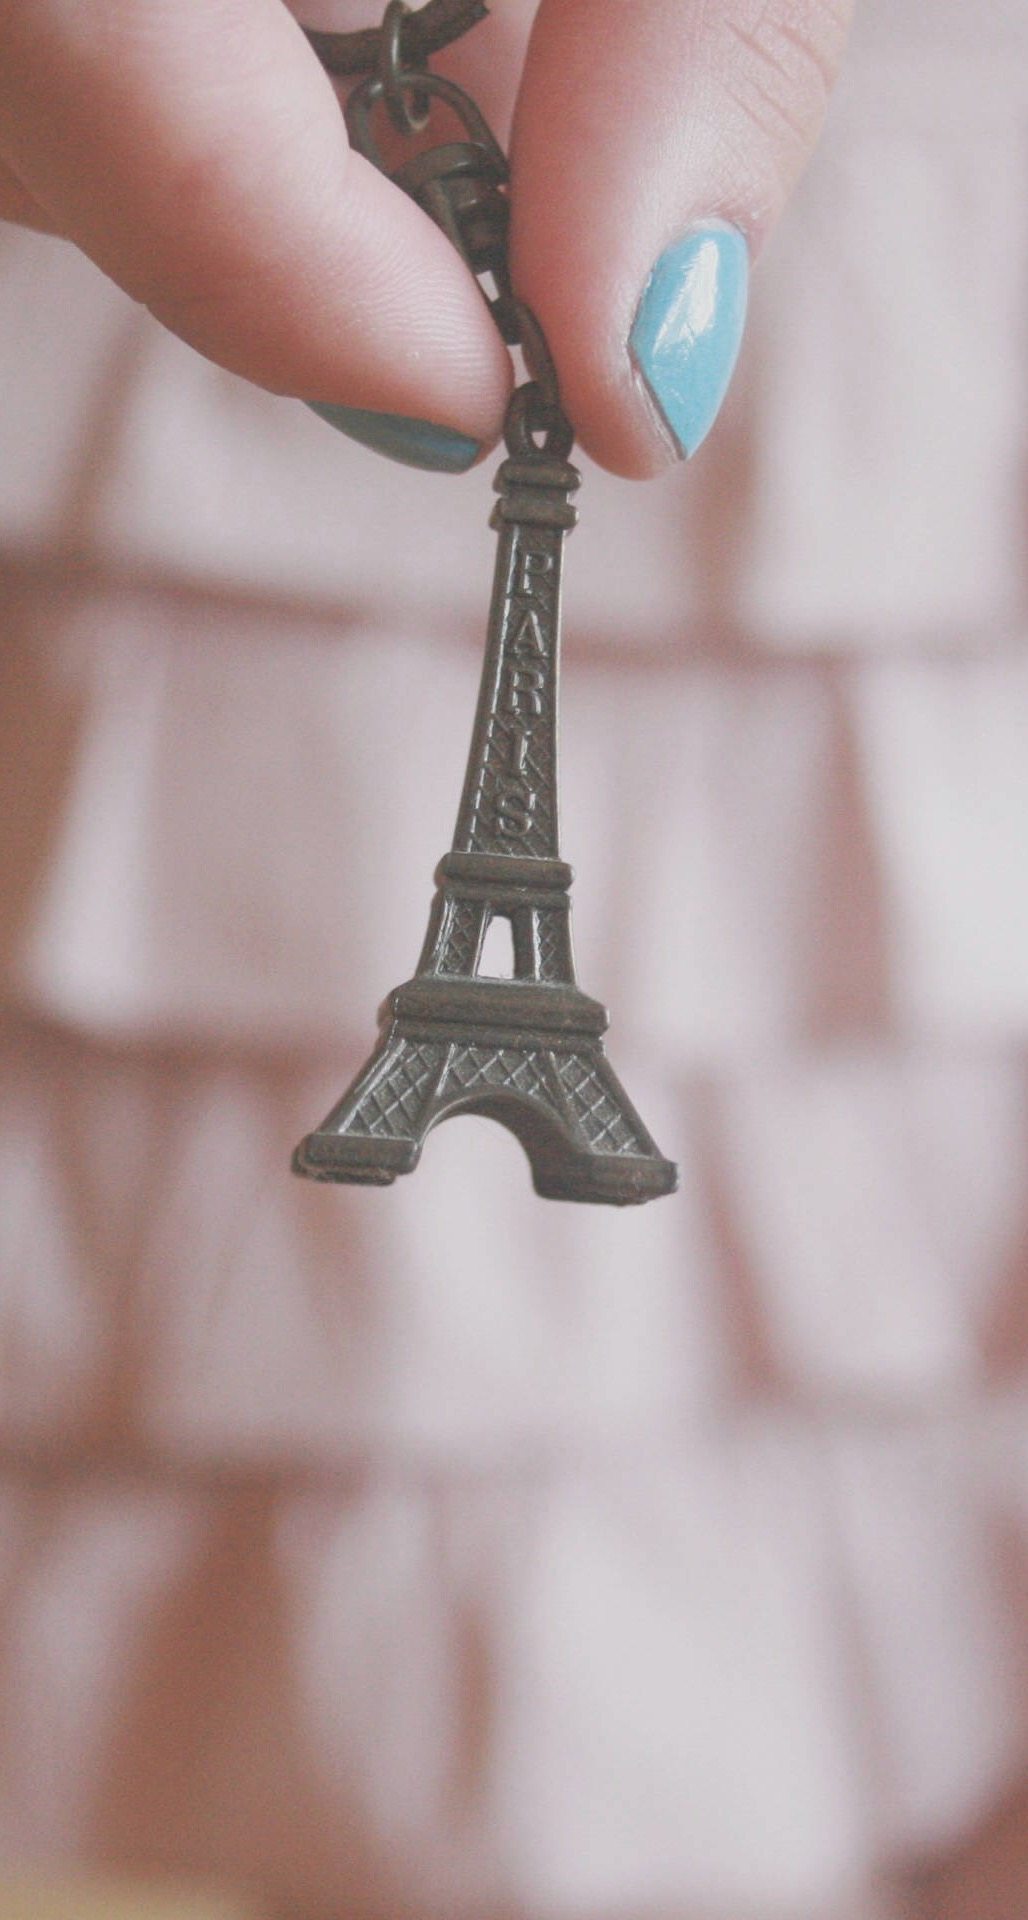 Eiffel Tower Paris Key Ring Miniature Android Wallpaper Wallpaper